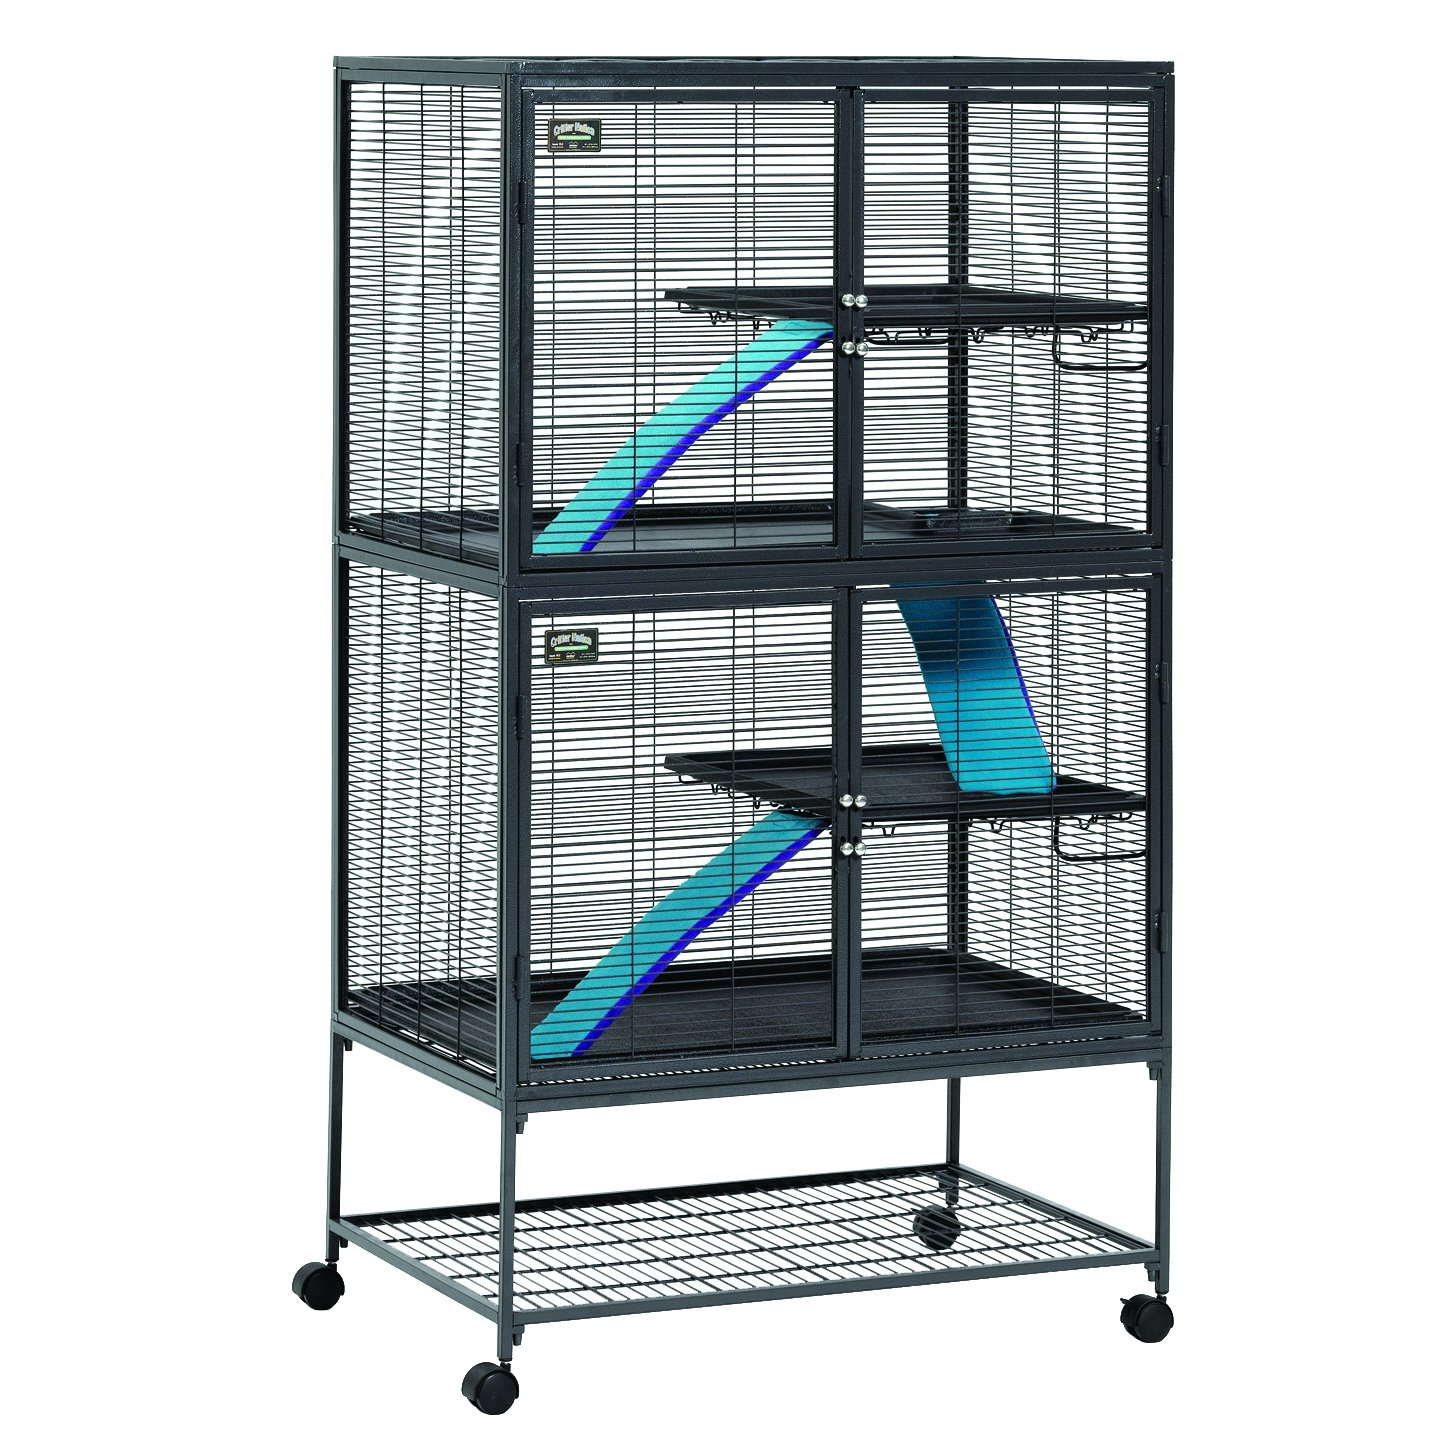 MidWest Deluxe Critter Nation Double Unit Small Animal Cage (Model 162) Includes 2 leak-Proof Pans, 2 Shelves, 3 Ramps w/ Ramp Covers & 4 locking Wheel Casters, Measures 36''L x 25''W x 62.5''H Inches, Ideal for Dagus, Rats, Ferrets, Sugar Gliders